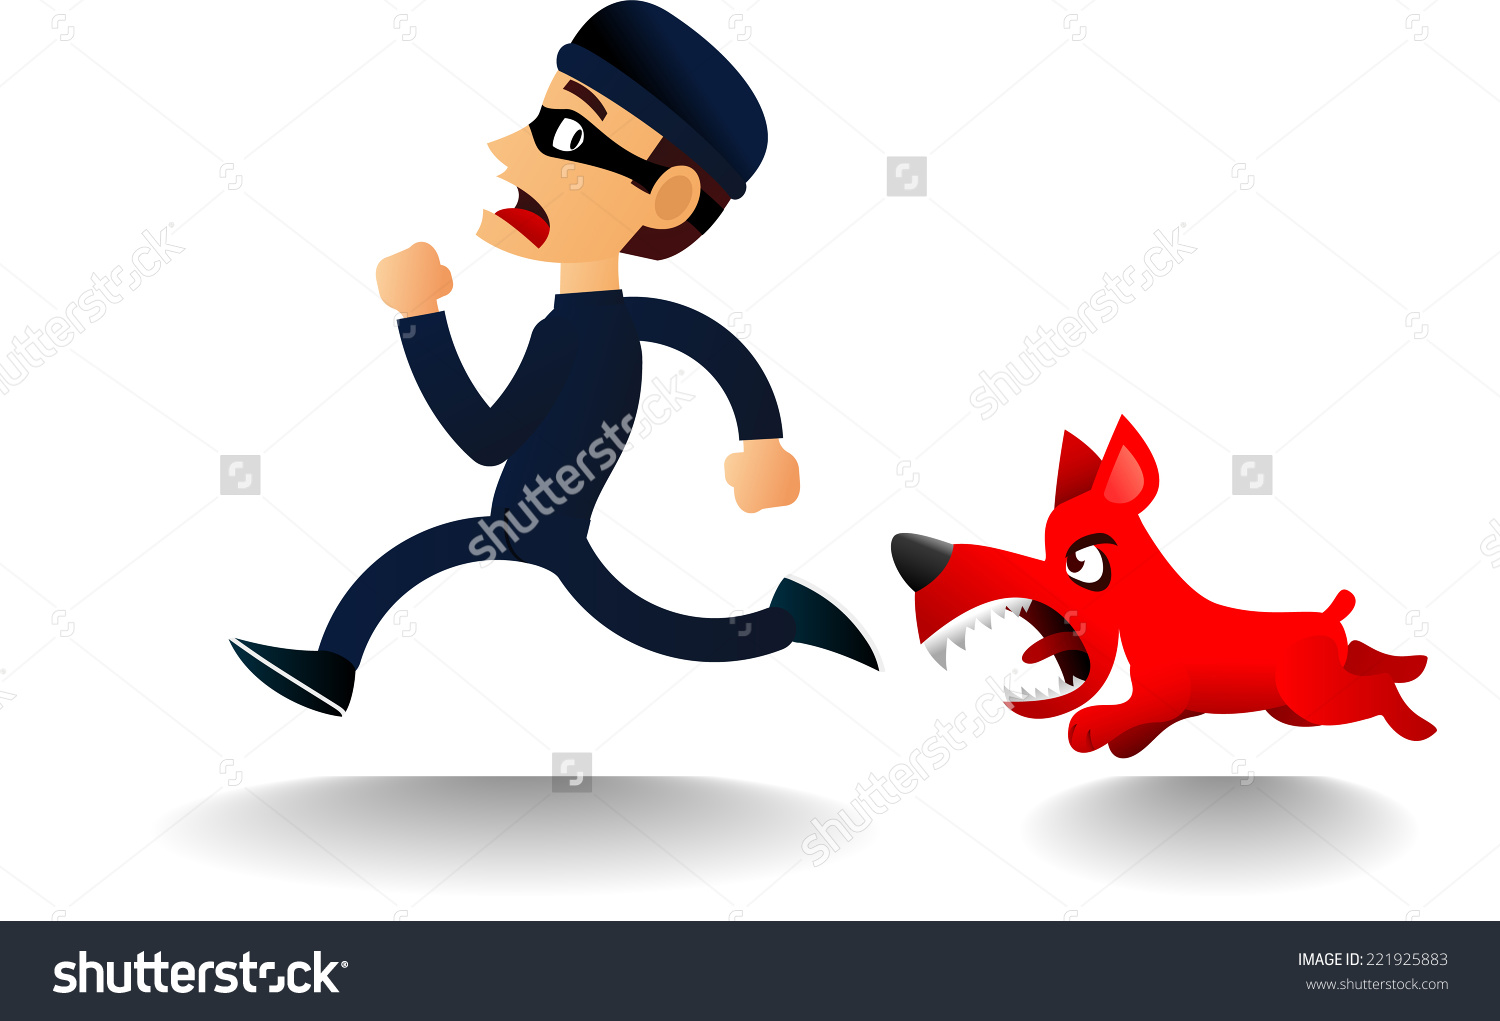 Agree dog chase black and white clipart graphic black and white stock Agree dog chase black and white clipart - ClipartFest graphic black and white stock